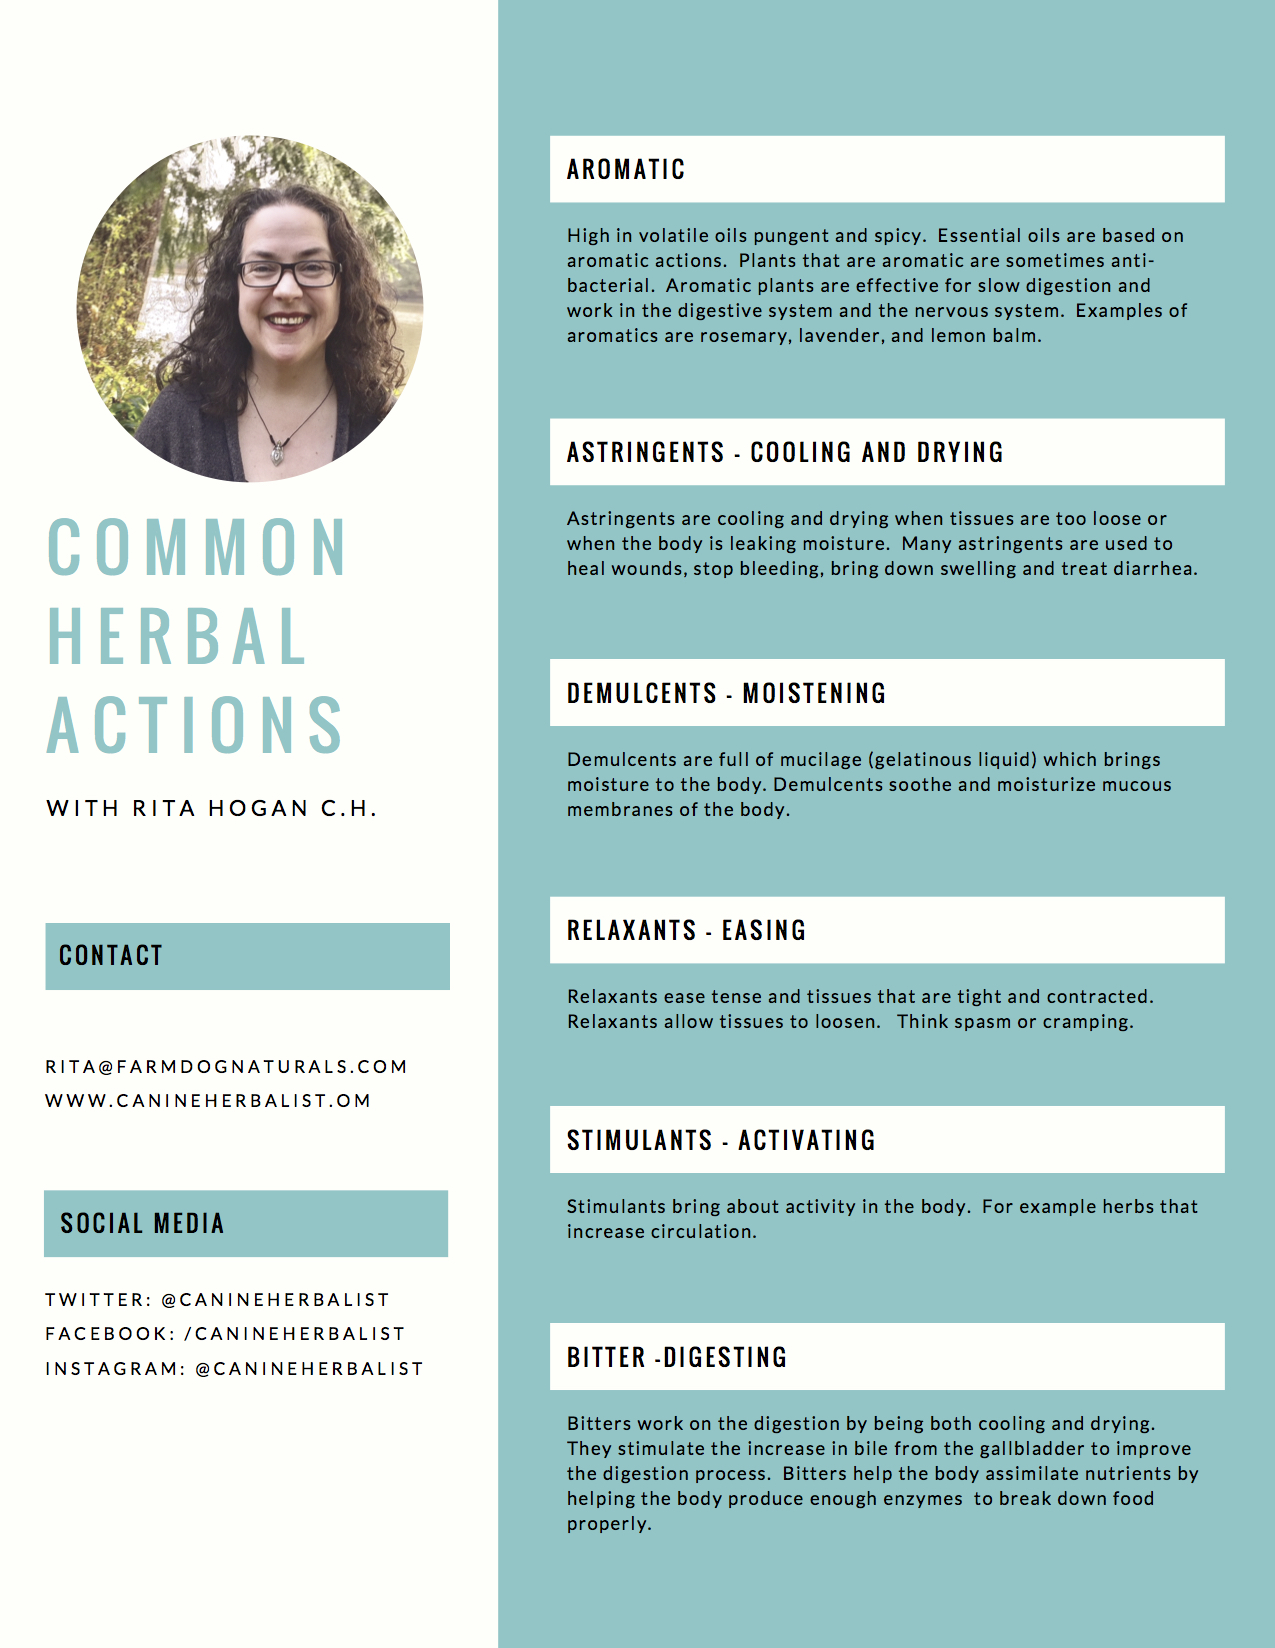 Common Herbal Actions.jpg